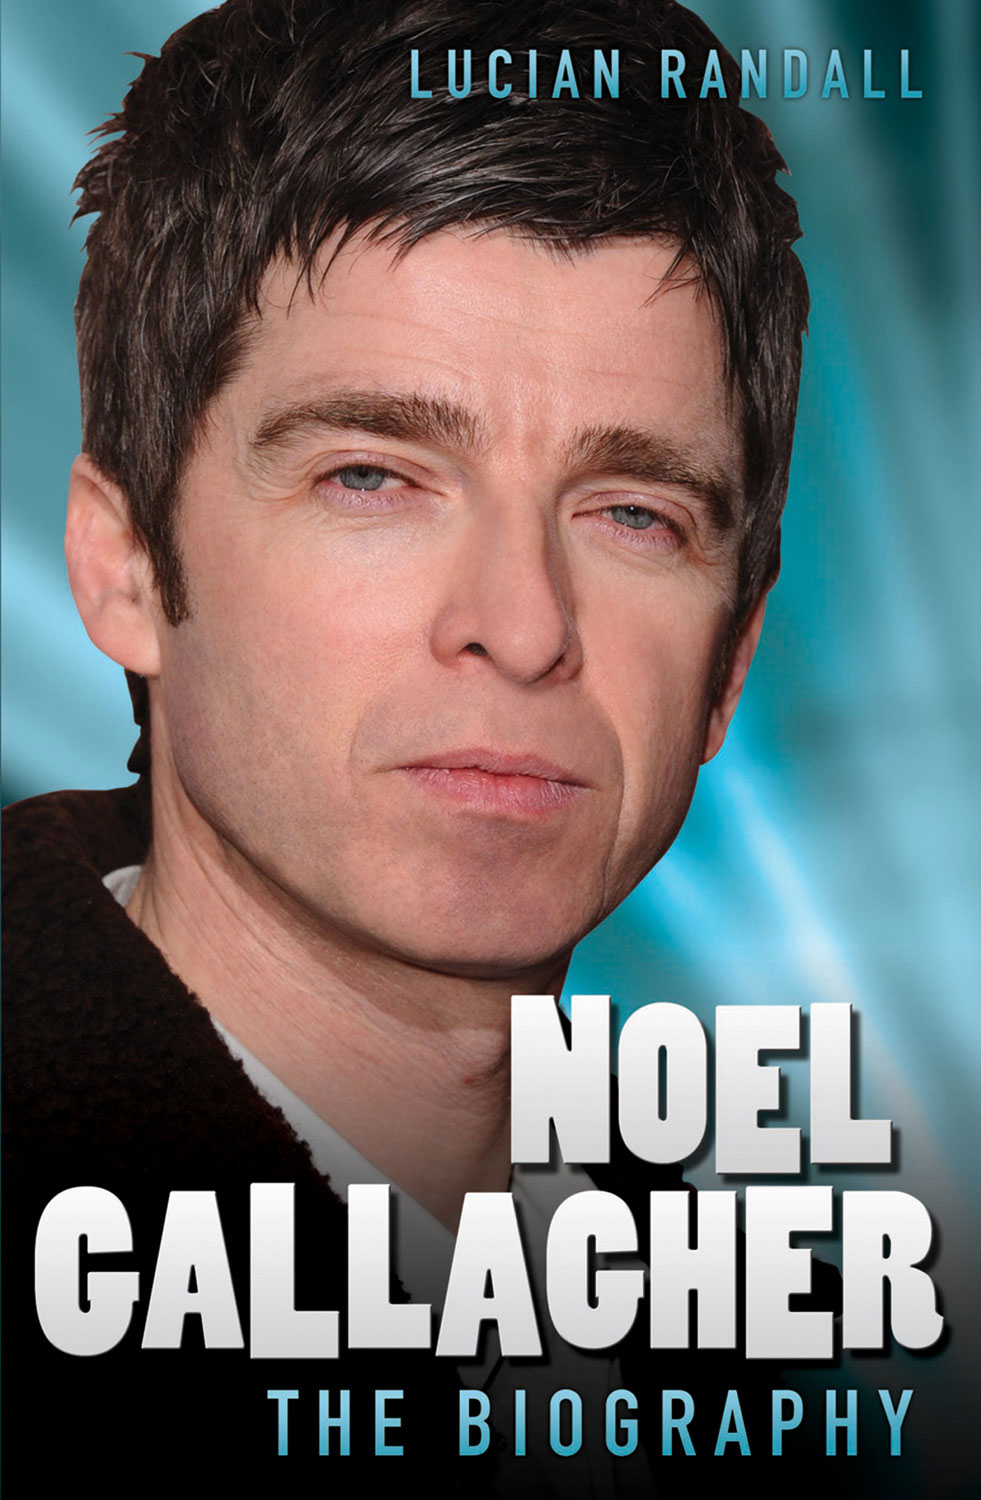 Noel Gallagher By: Lucian Randall